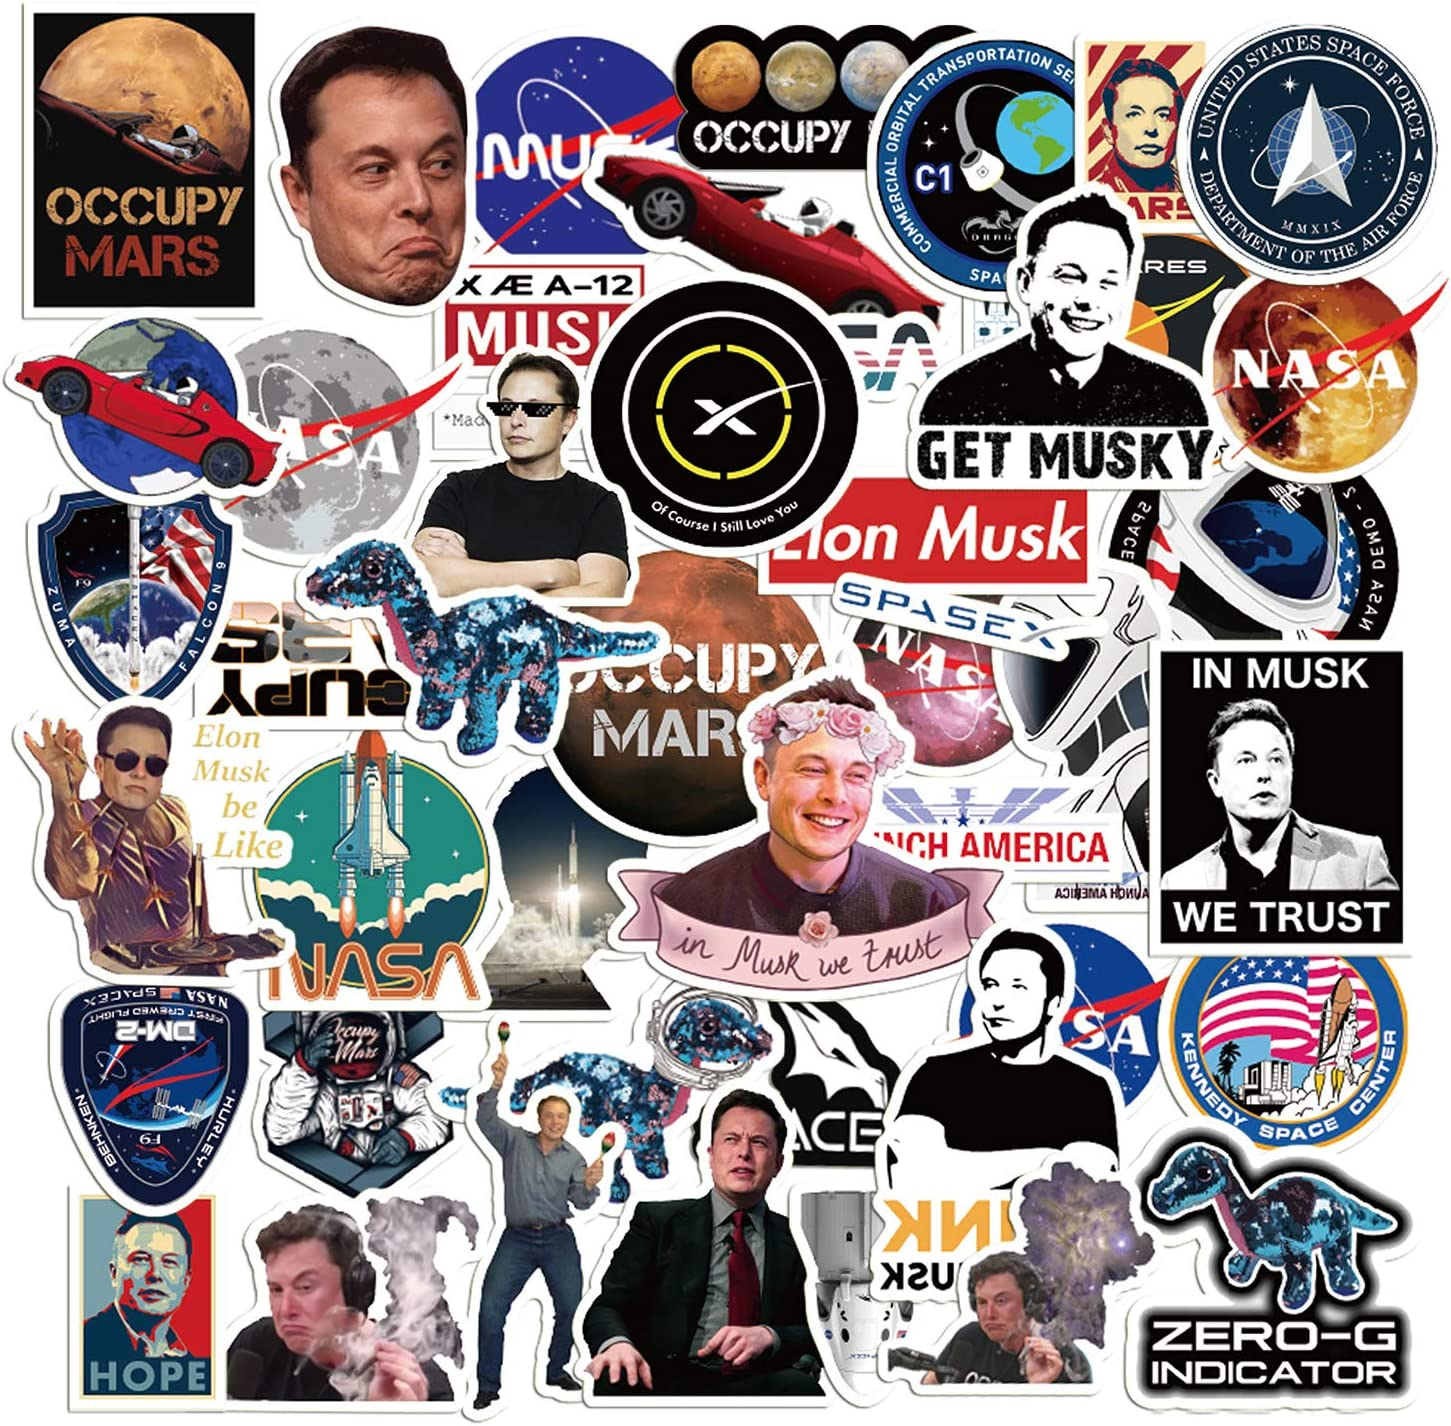 50Pack Space X Stickers Themed Elon Musk Stickers Party Supplies Corona Waterproof Aesthetic Cartoon Sticker for Water Bottle Laptop Phone Case Pen Holder